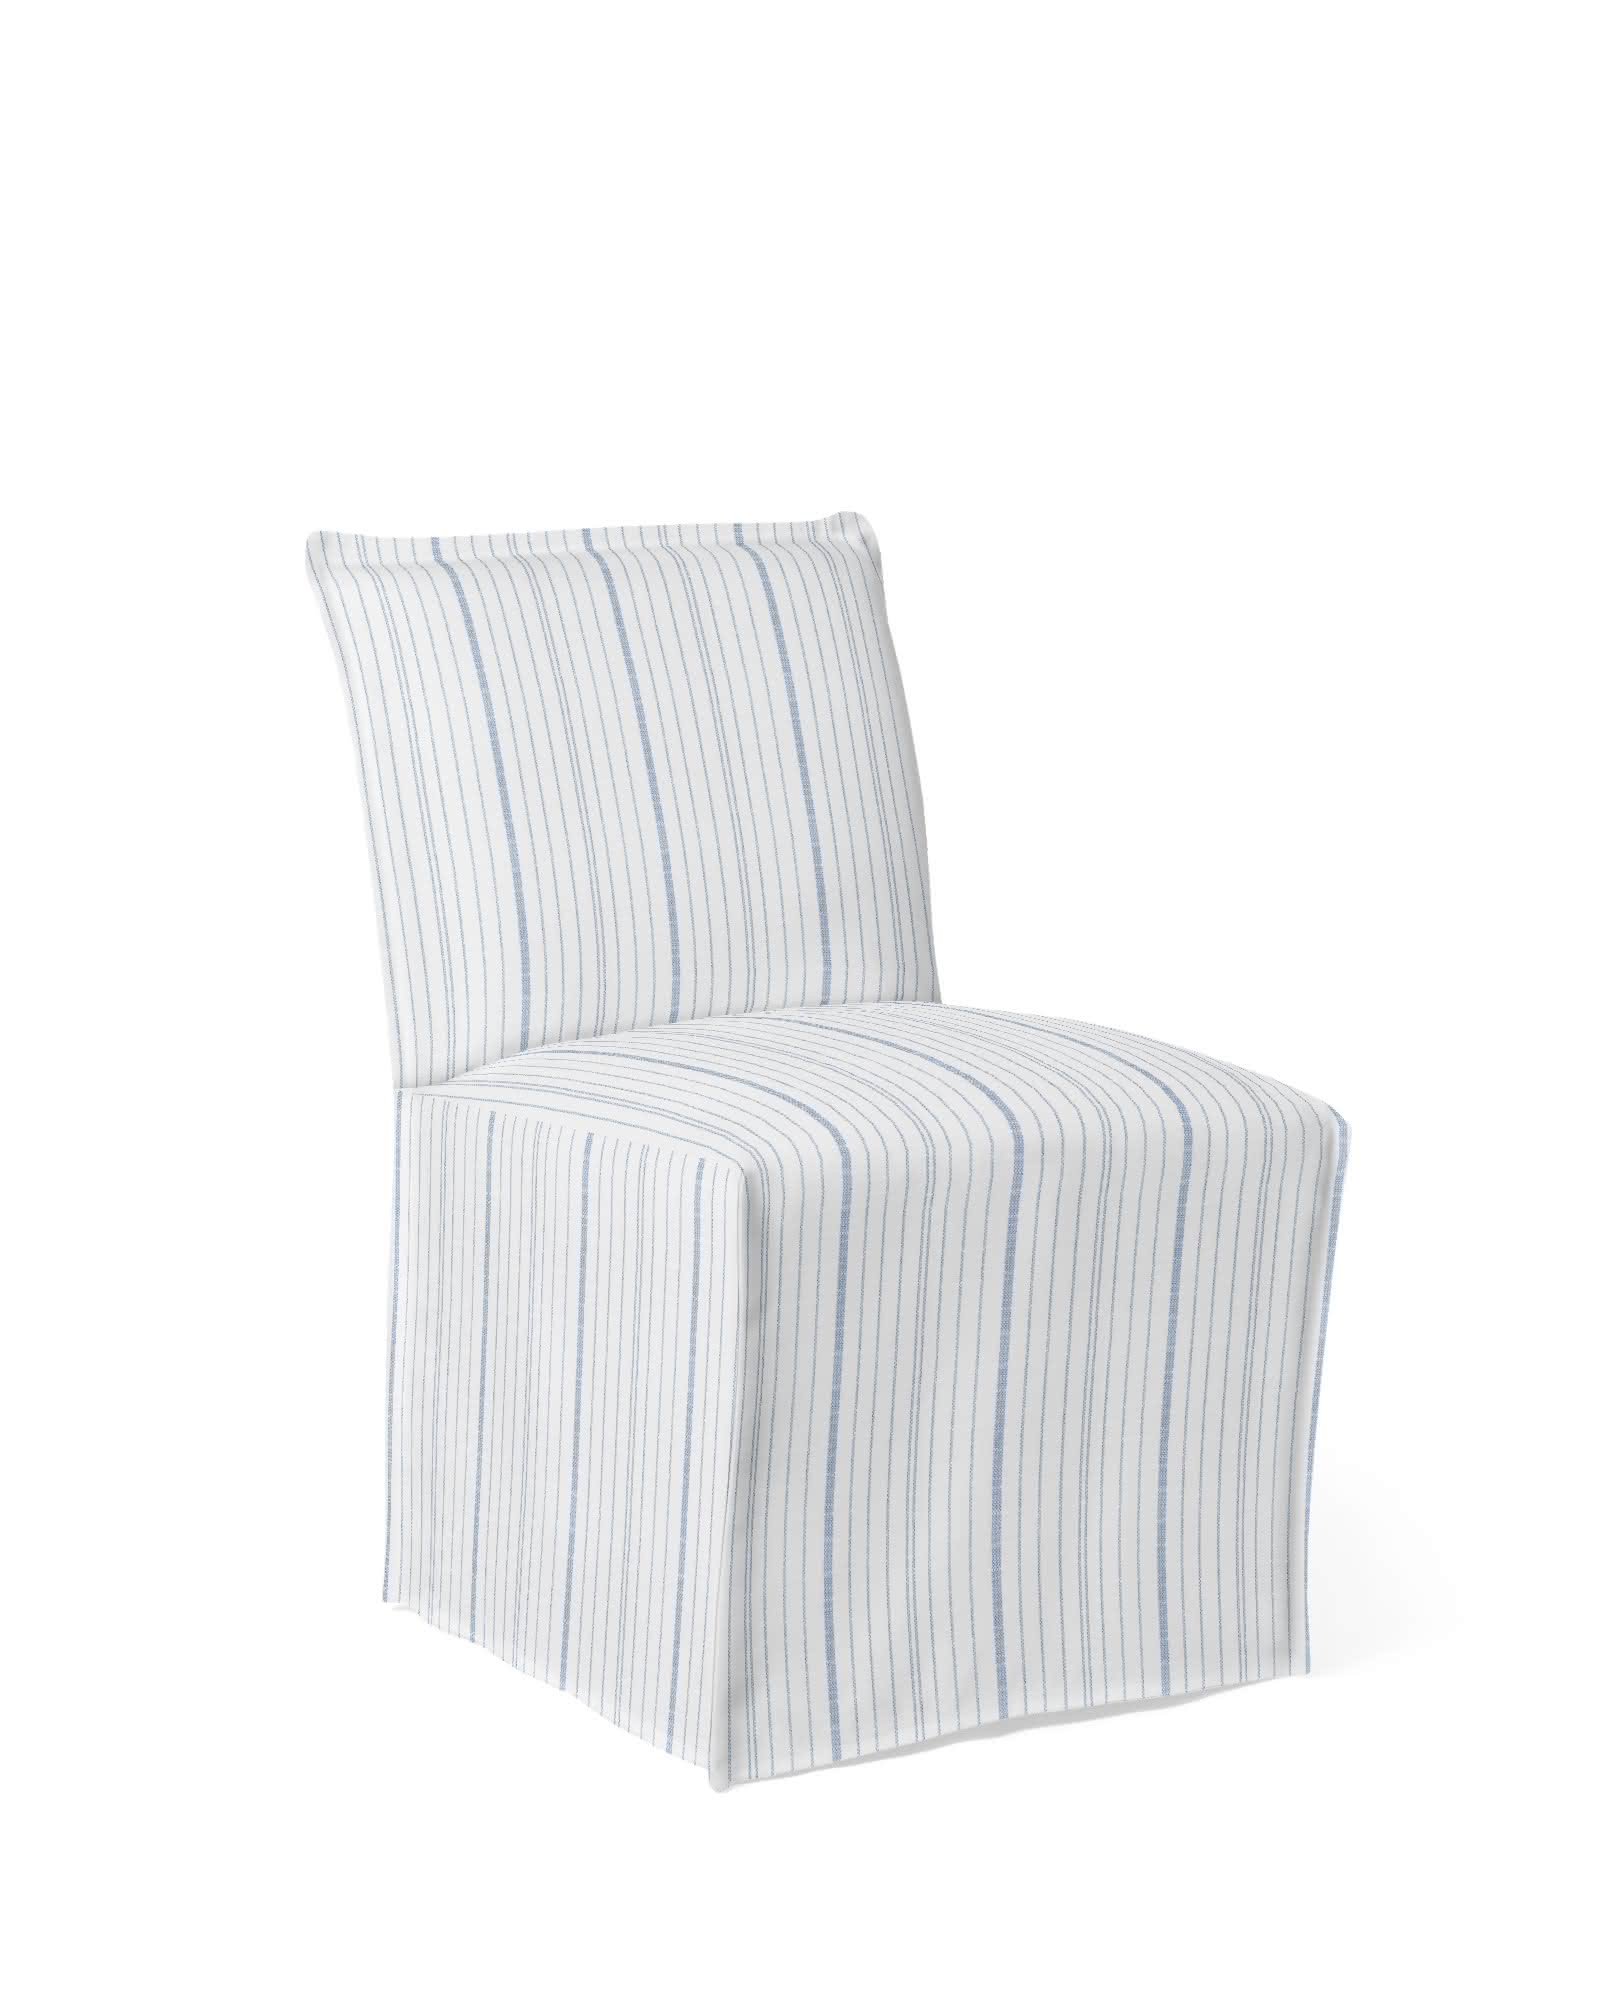 Sundial Outdoor Side Chair - Performance Navy Surf Stripe,